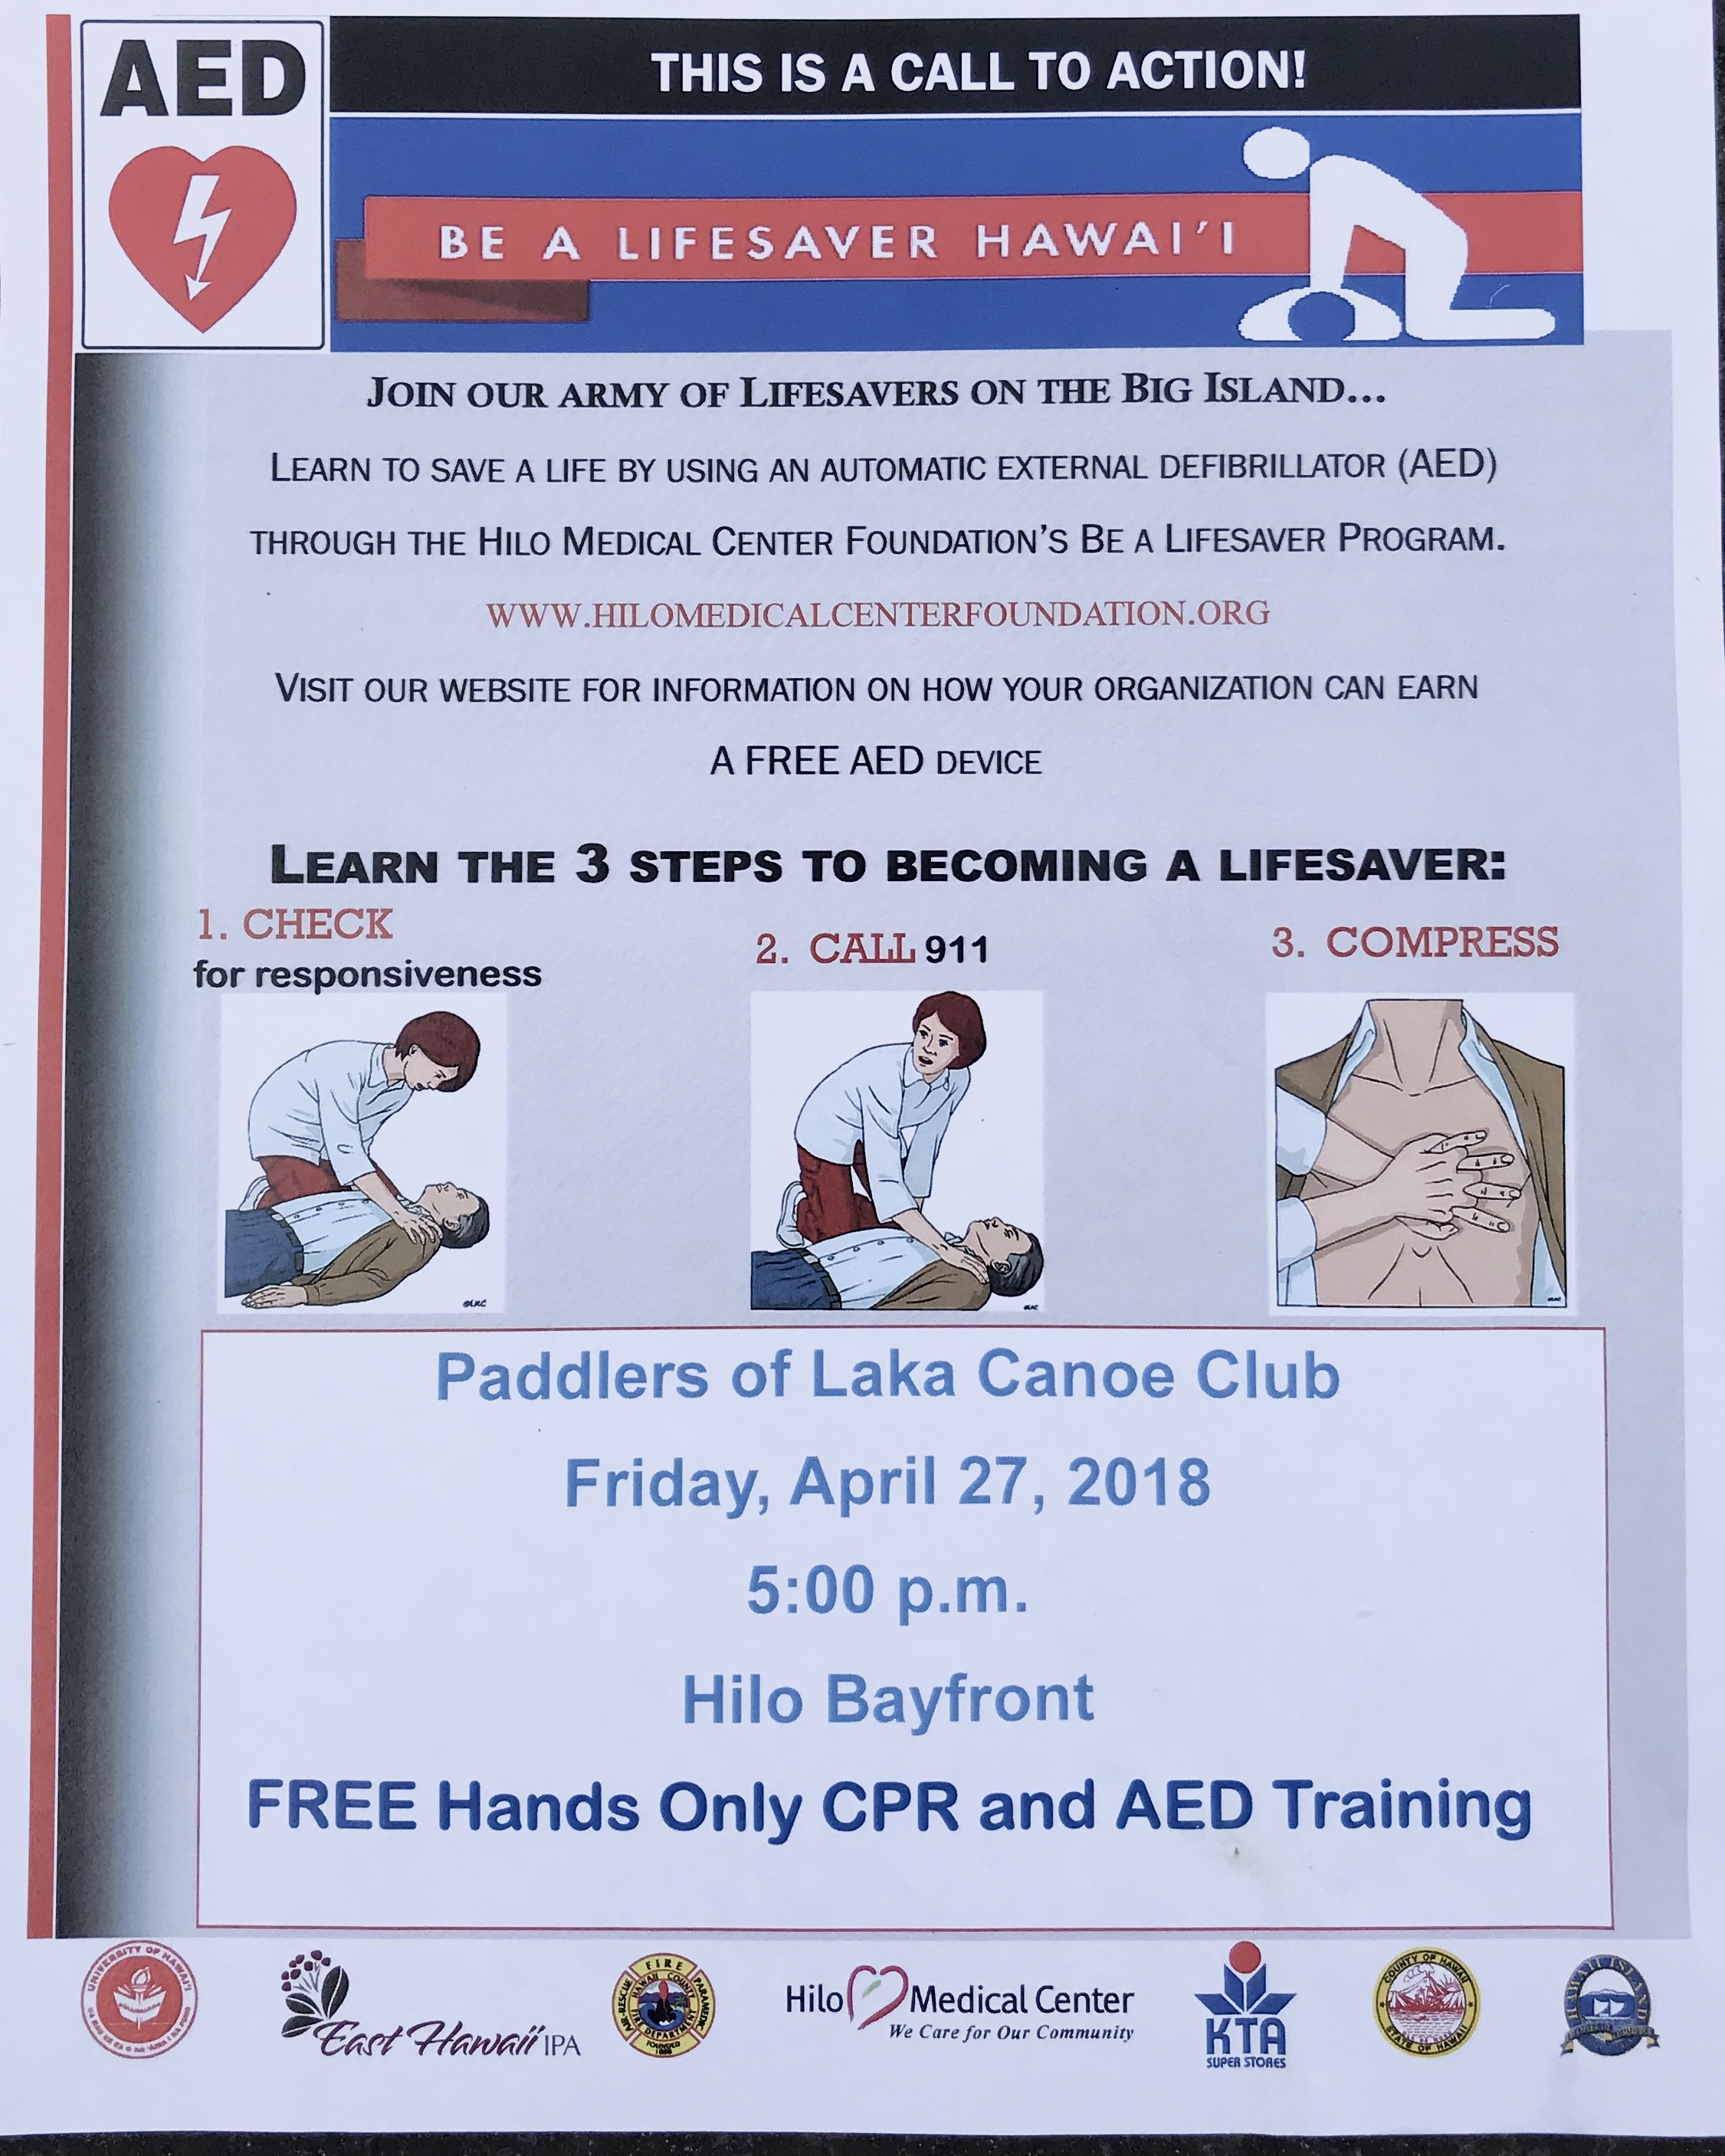 Free Hands On Cpr And Aed Training Puna Canoe Club